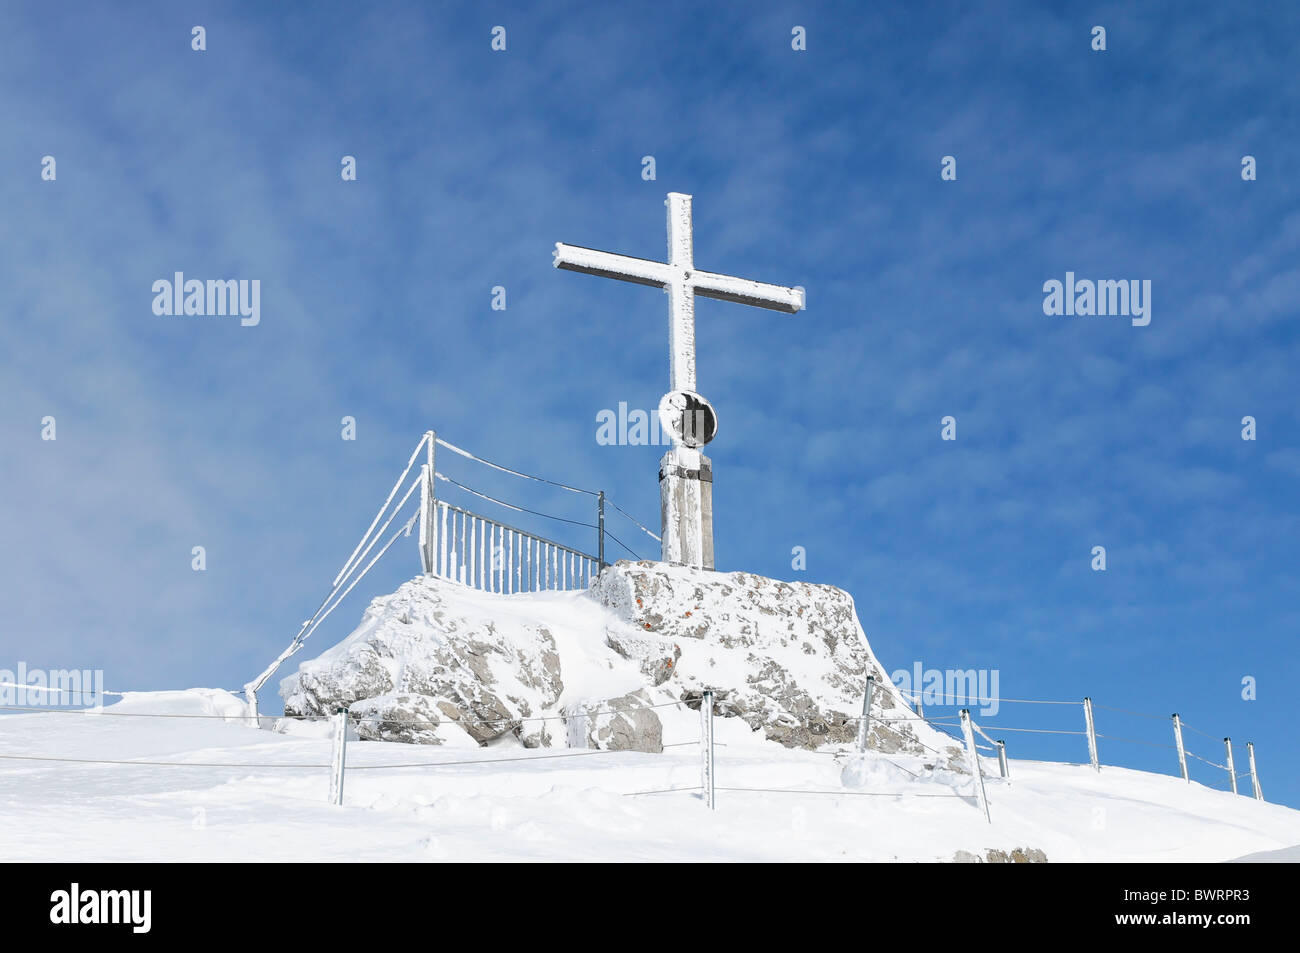 Nebelhorn summit cross, 2224m, Oberstdorf, Oberallgaeu district, Bavaria, Germany, Europe - Stock Image